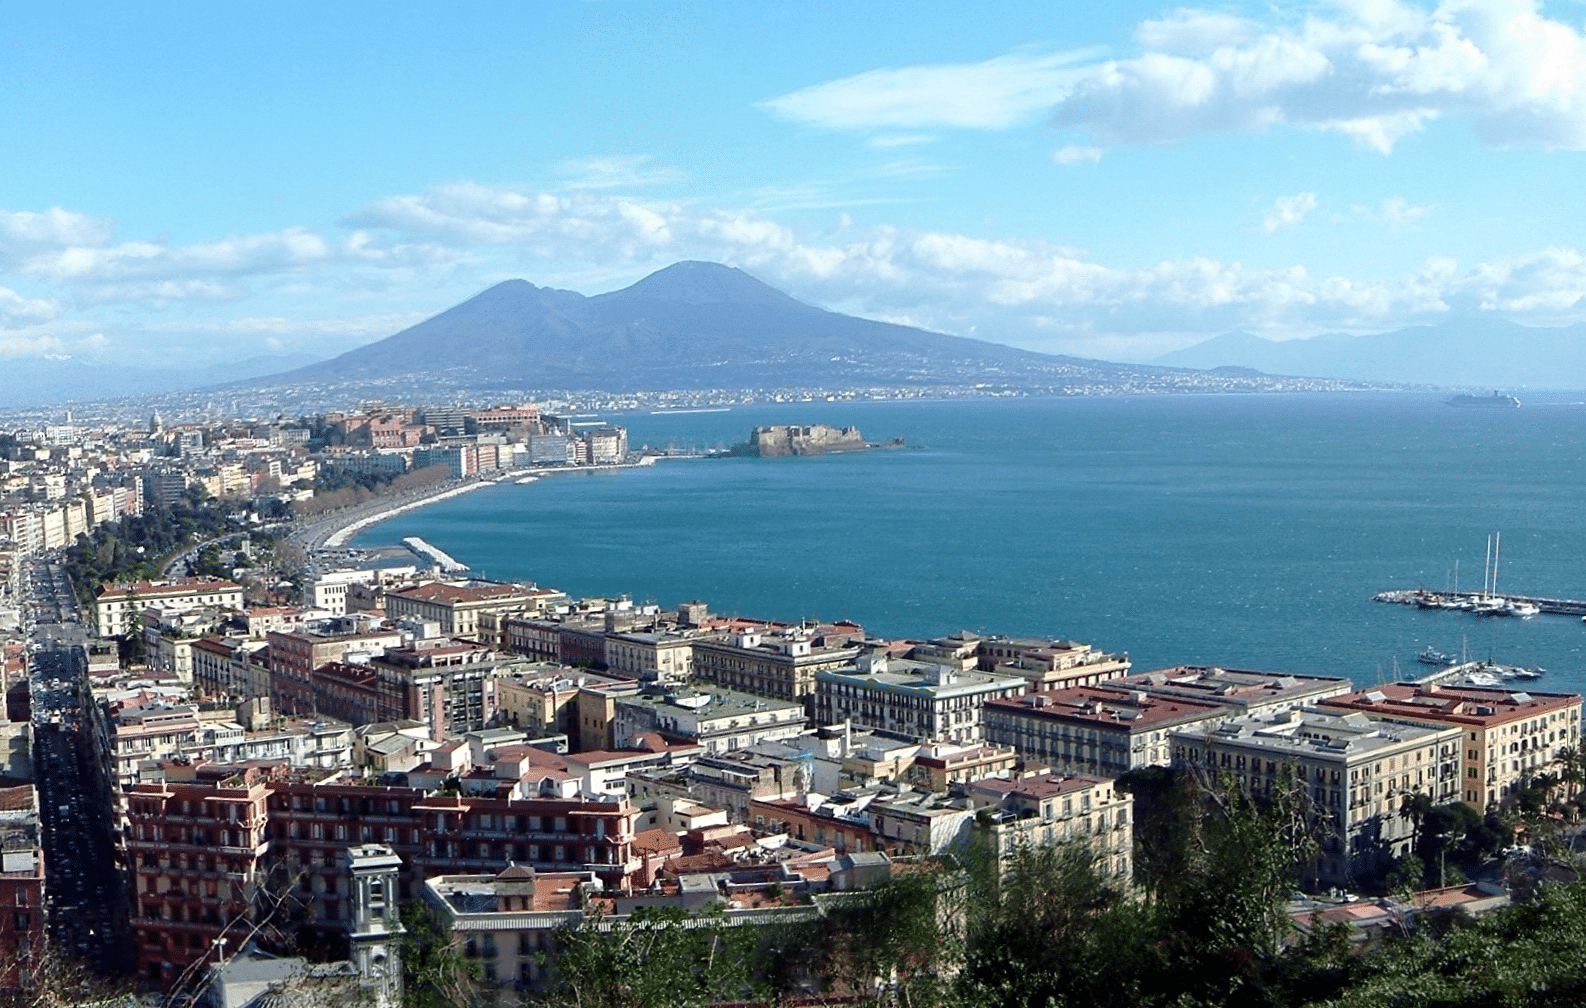 Napoli, The Bay and Vesuvio